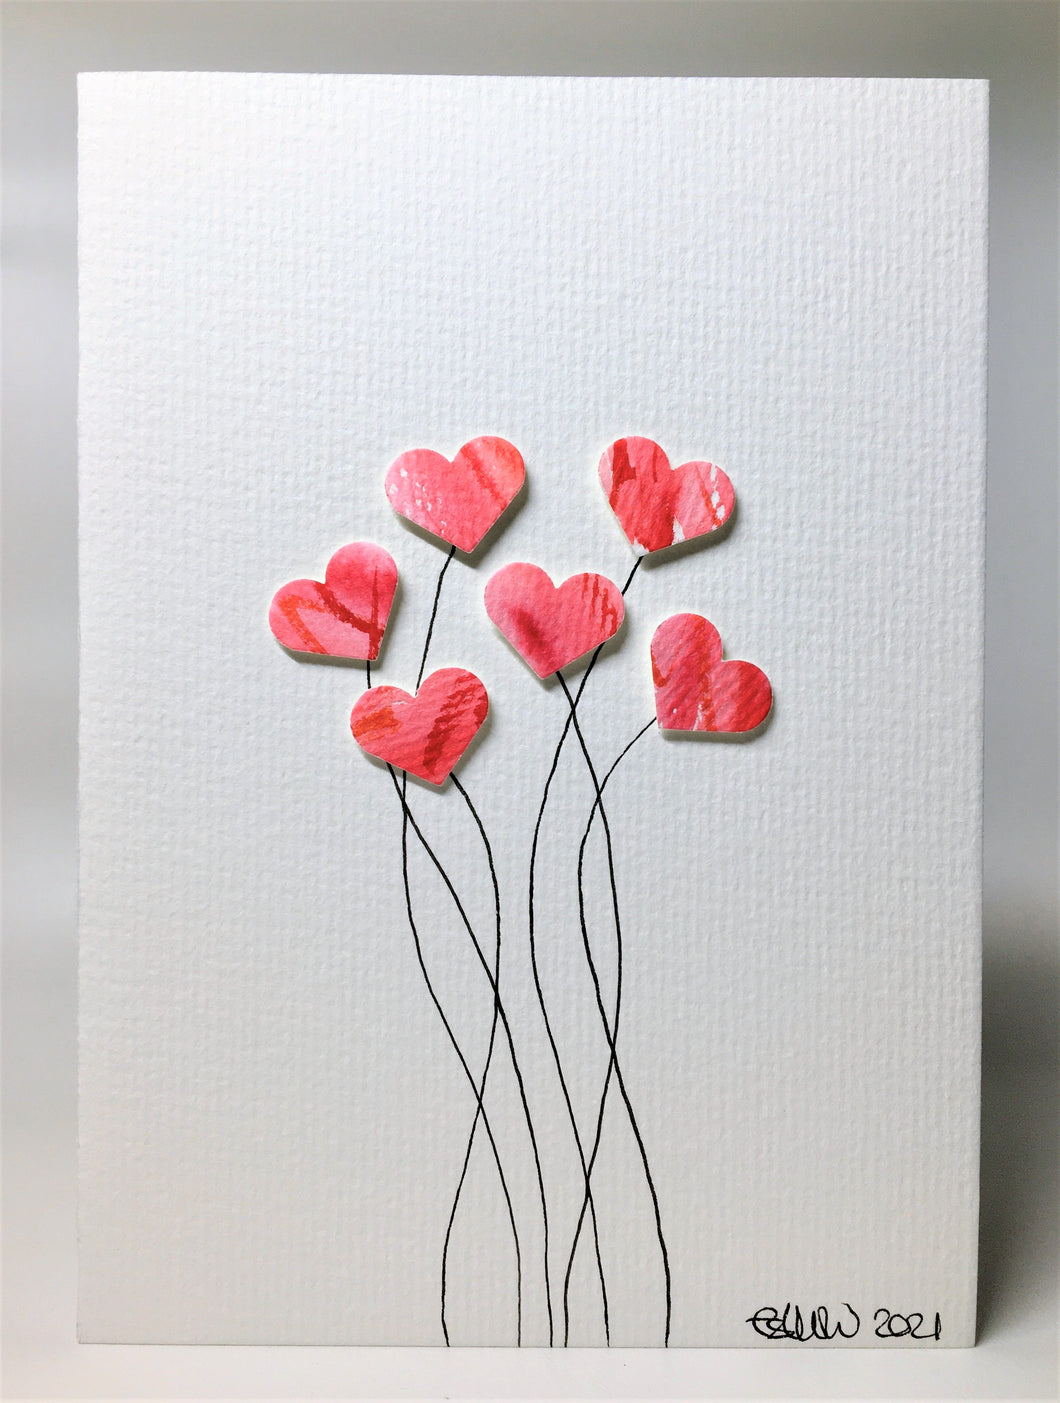 Original Hand Painted Greeting Card - Six Pink and Red Heart Flowers - eDgE dEsiGn London